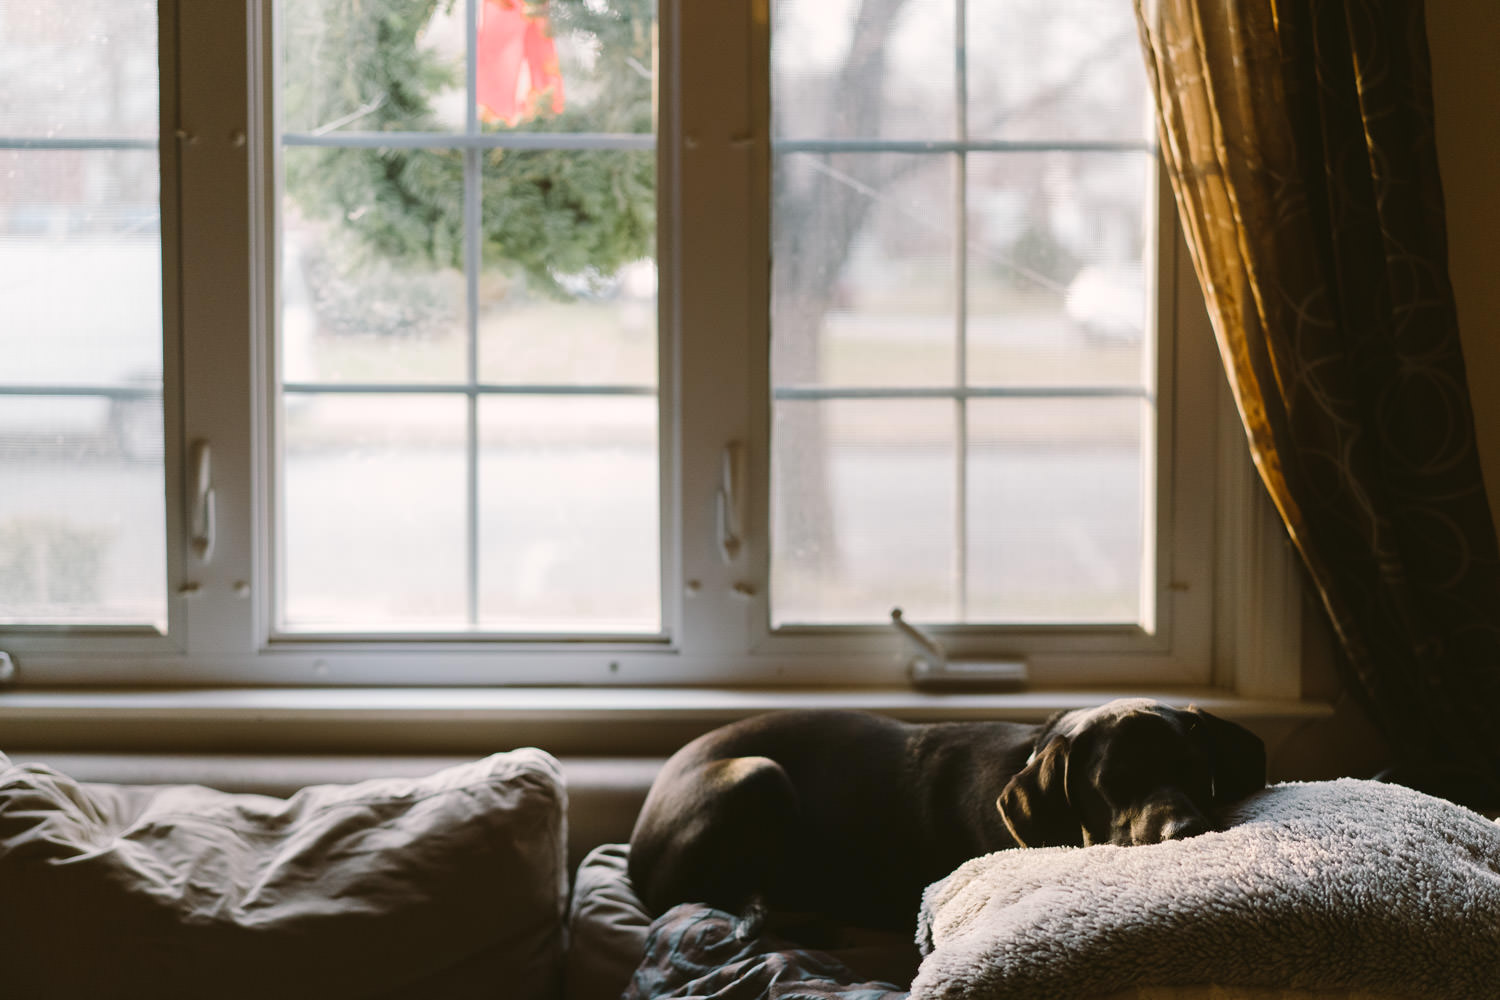 A dog sleeps on the back of a couch.